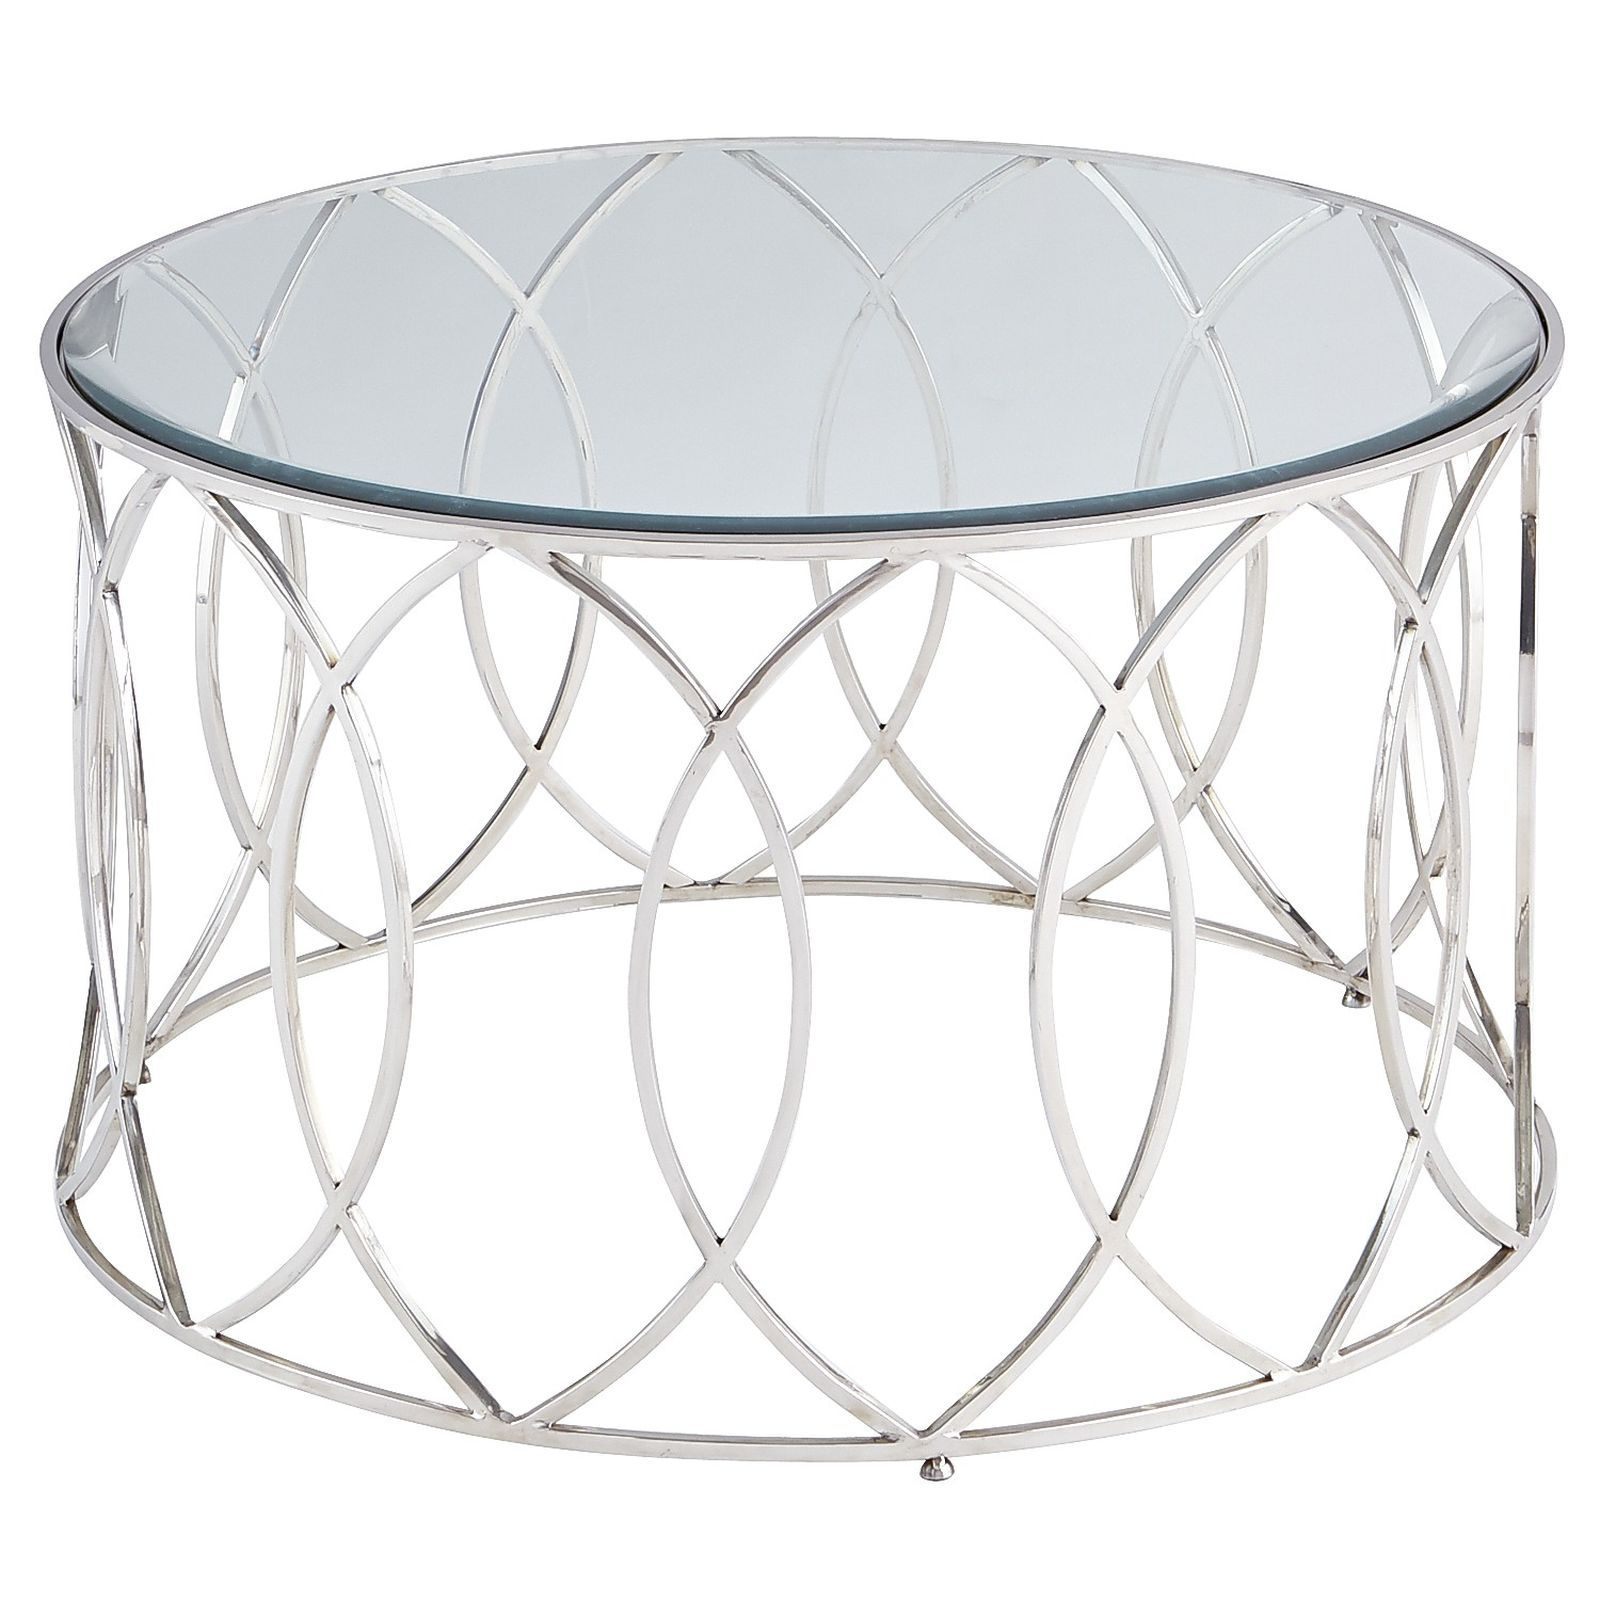 Elana Bronze Iron Round Coffee Table In 2020 Silver Coffee Table